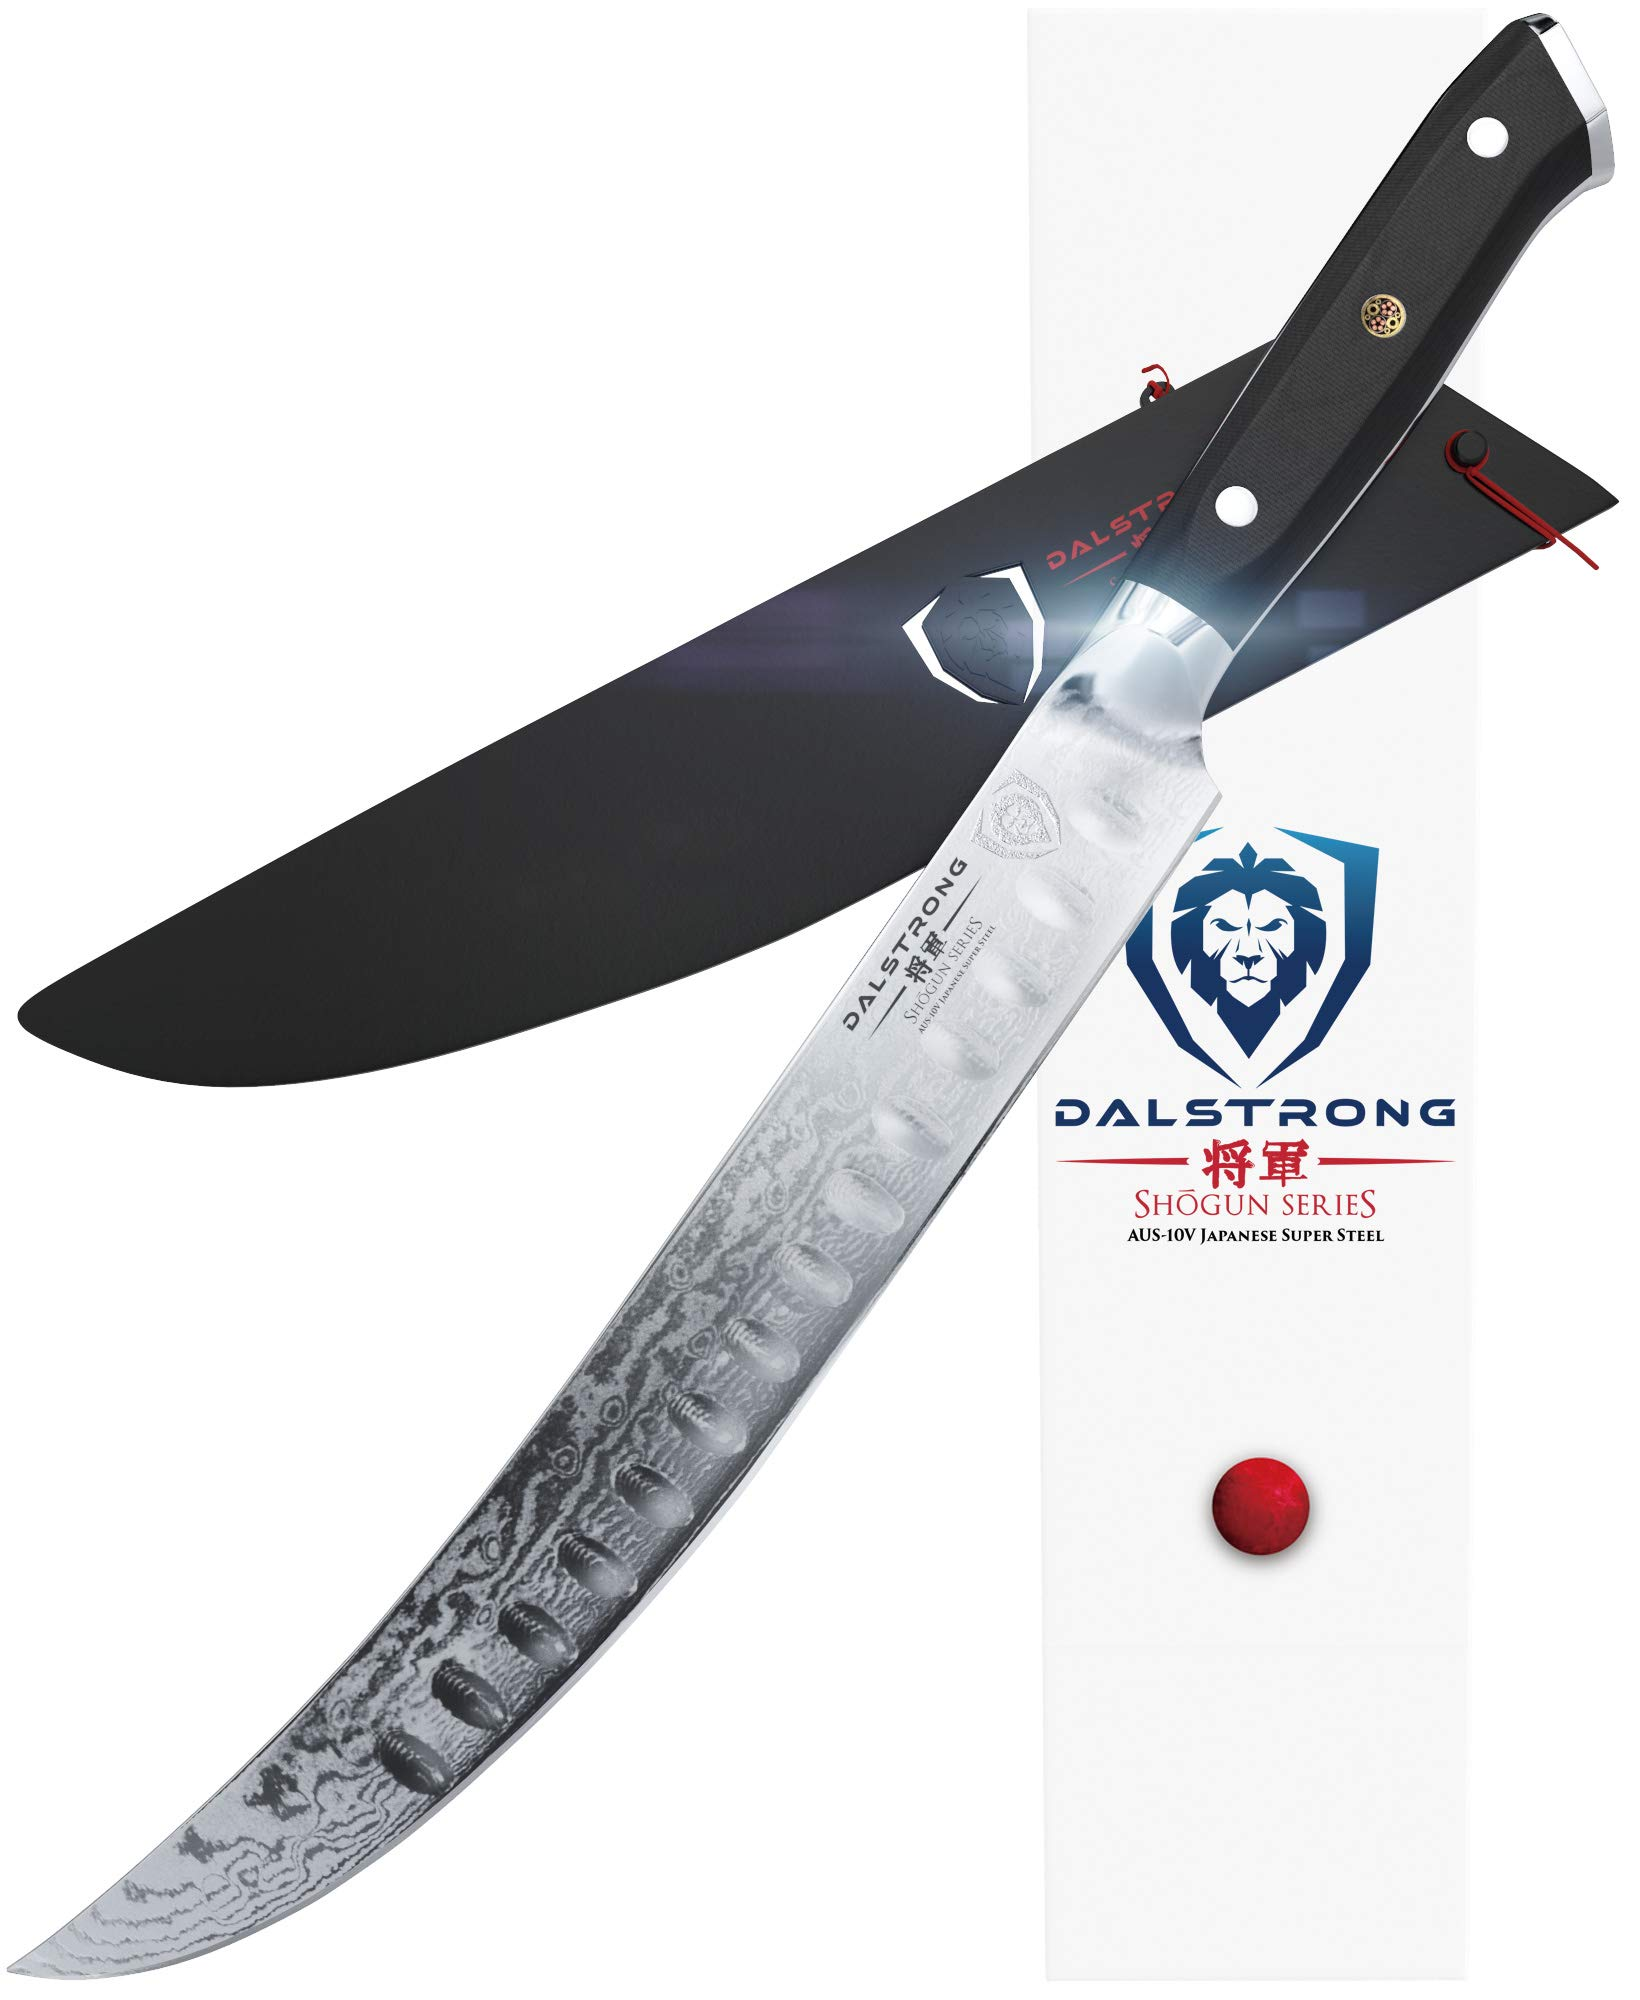 DALSTRONG Butcher's Breaking Cimitar Knife - 10'' - Shogun Series Slicer - Damascus - Japanese AUS-10V Super Steel - Vacuum Treated - Guard Included by Dalstrong